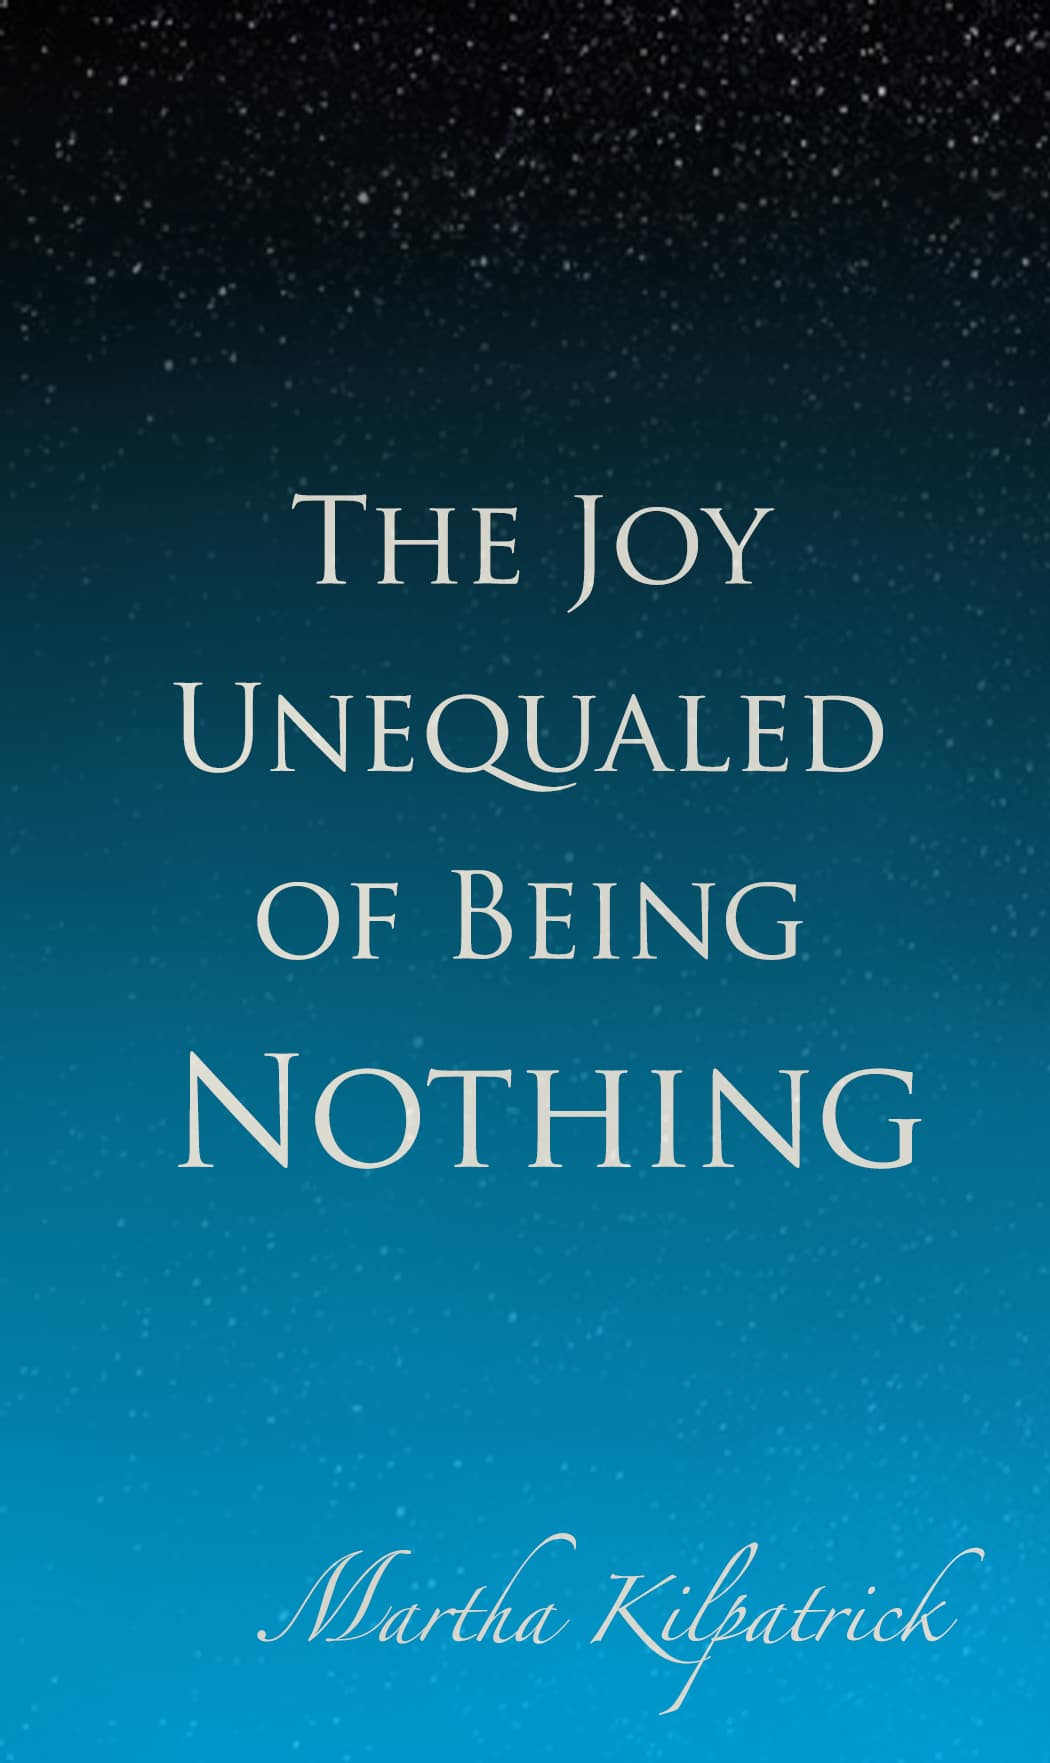 Joy Unequaled of Being Nothing Martha Kilpatrick